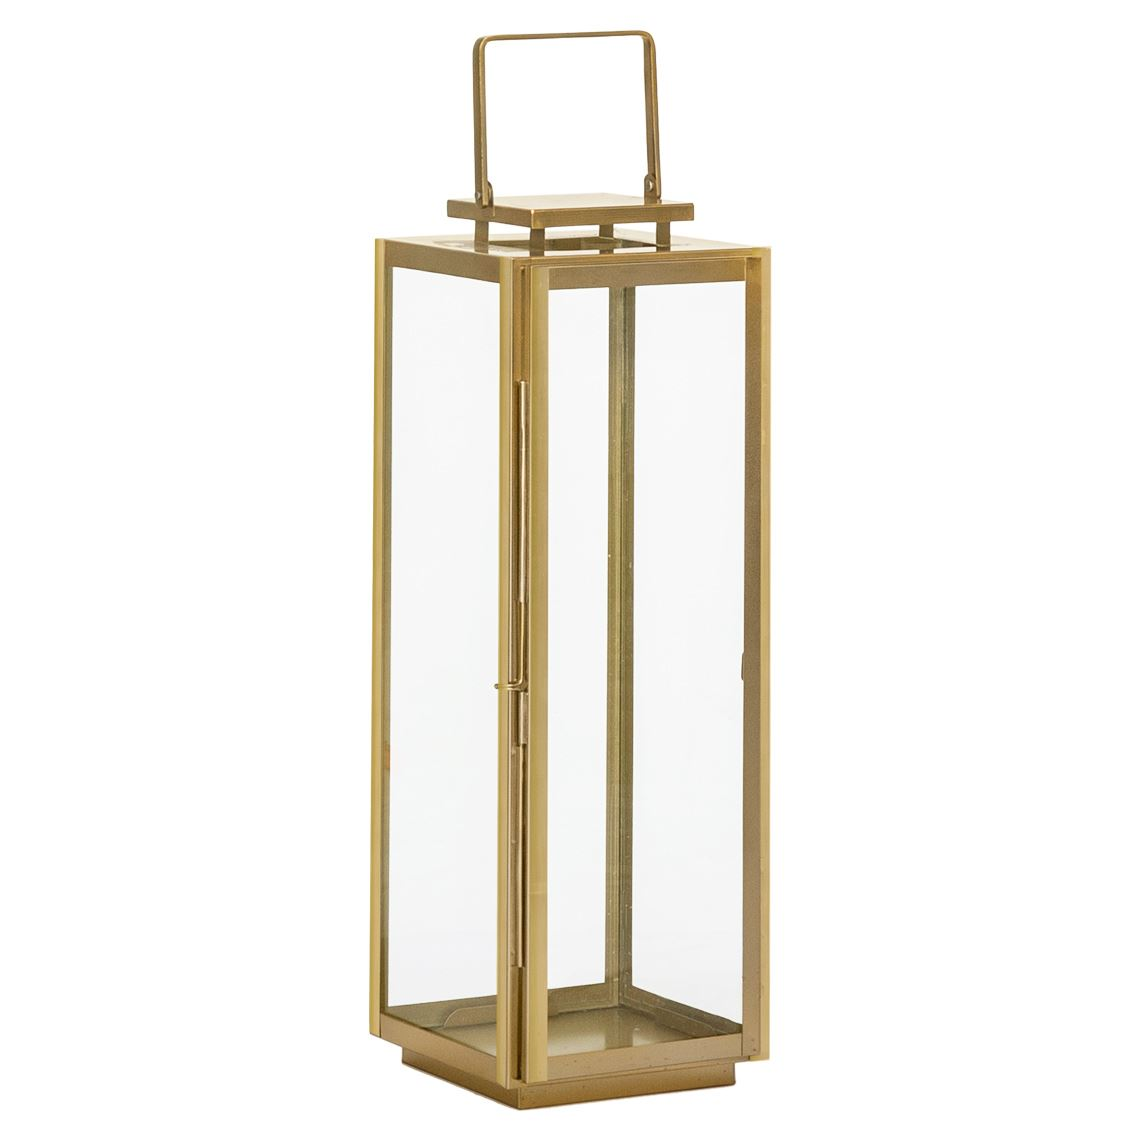 Balzan Lantern, Colour Size W 25cm x D 25cm x H 80cm in Gold Freedom